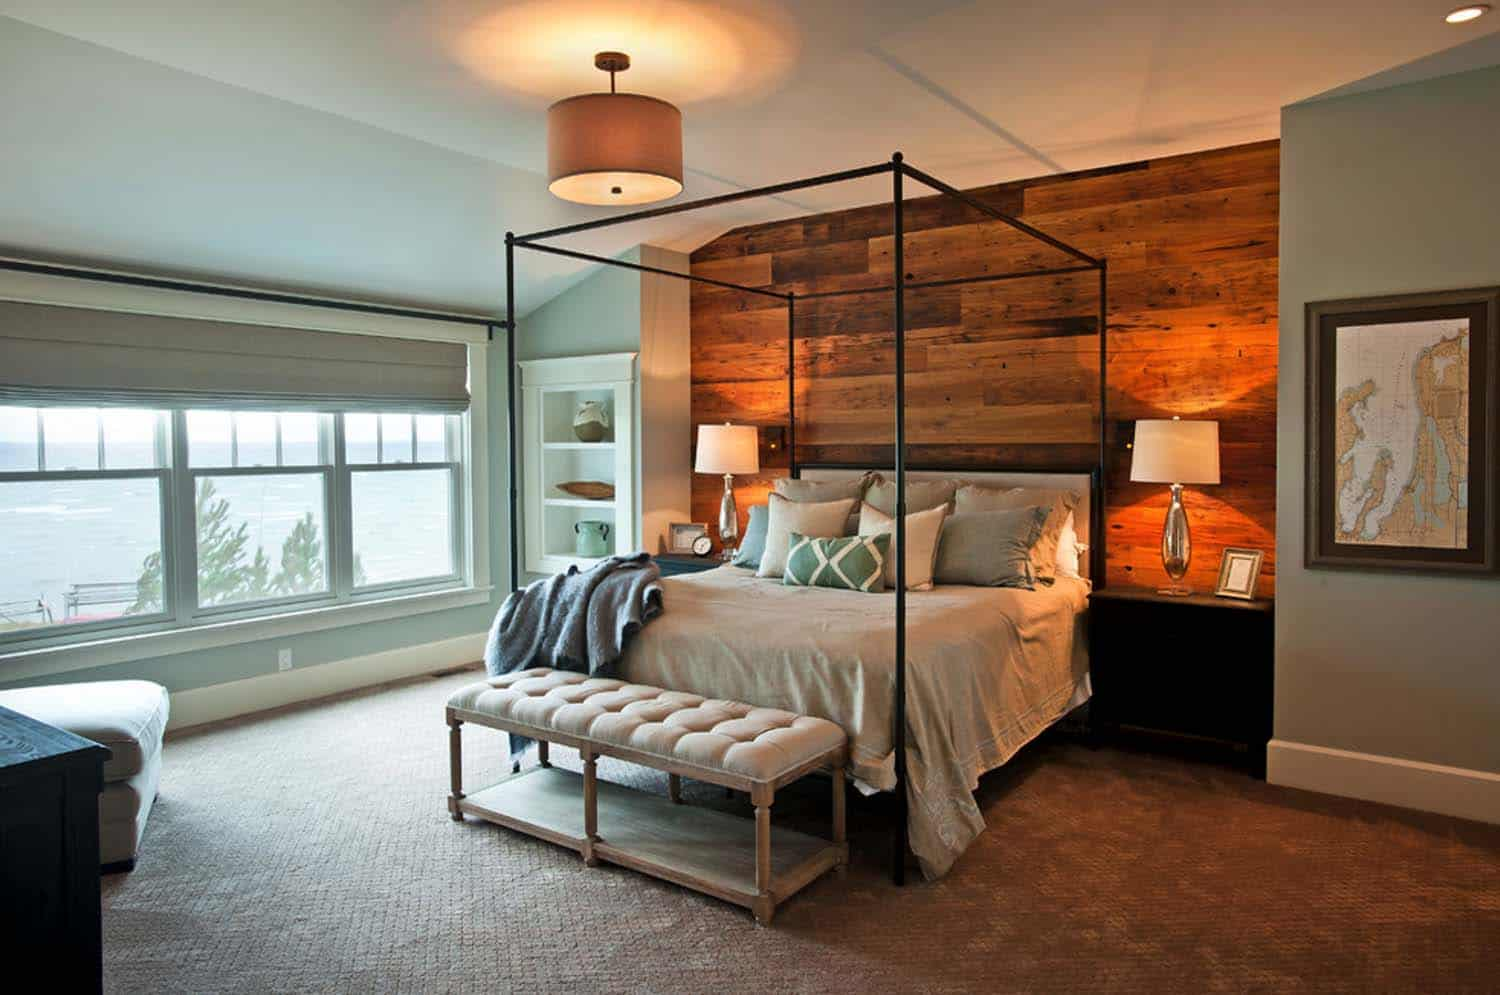 grand-traverse-bay-home-kp-designs-21-1-kindesign